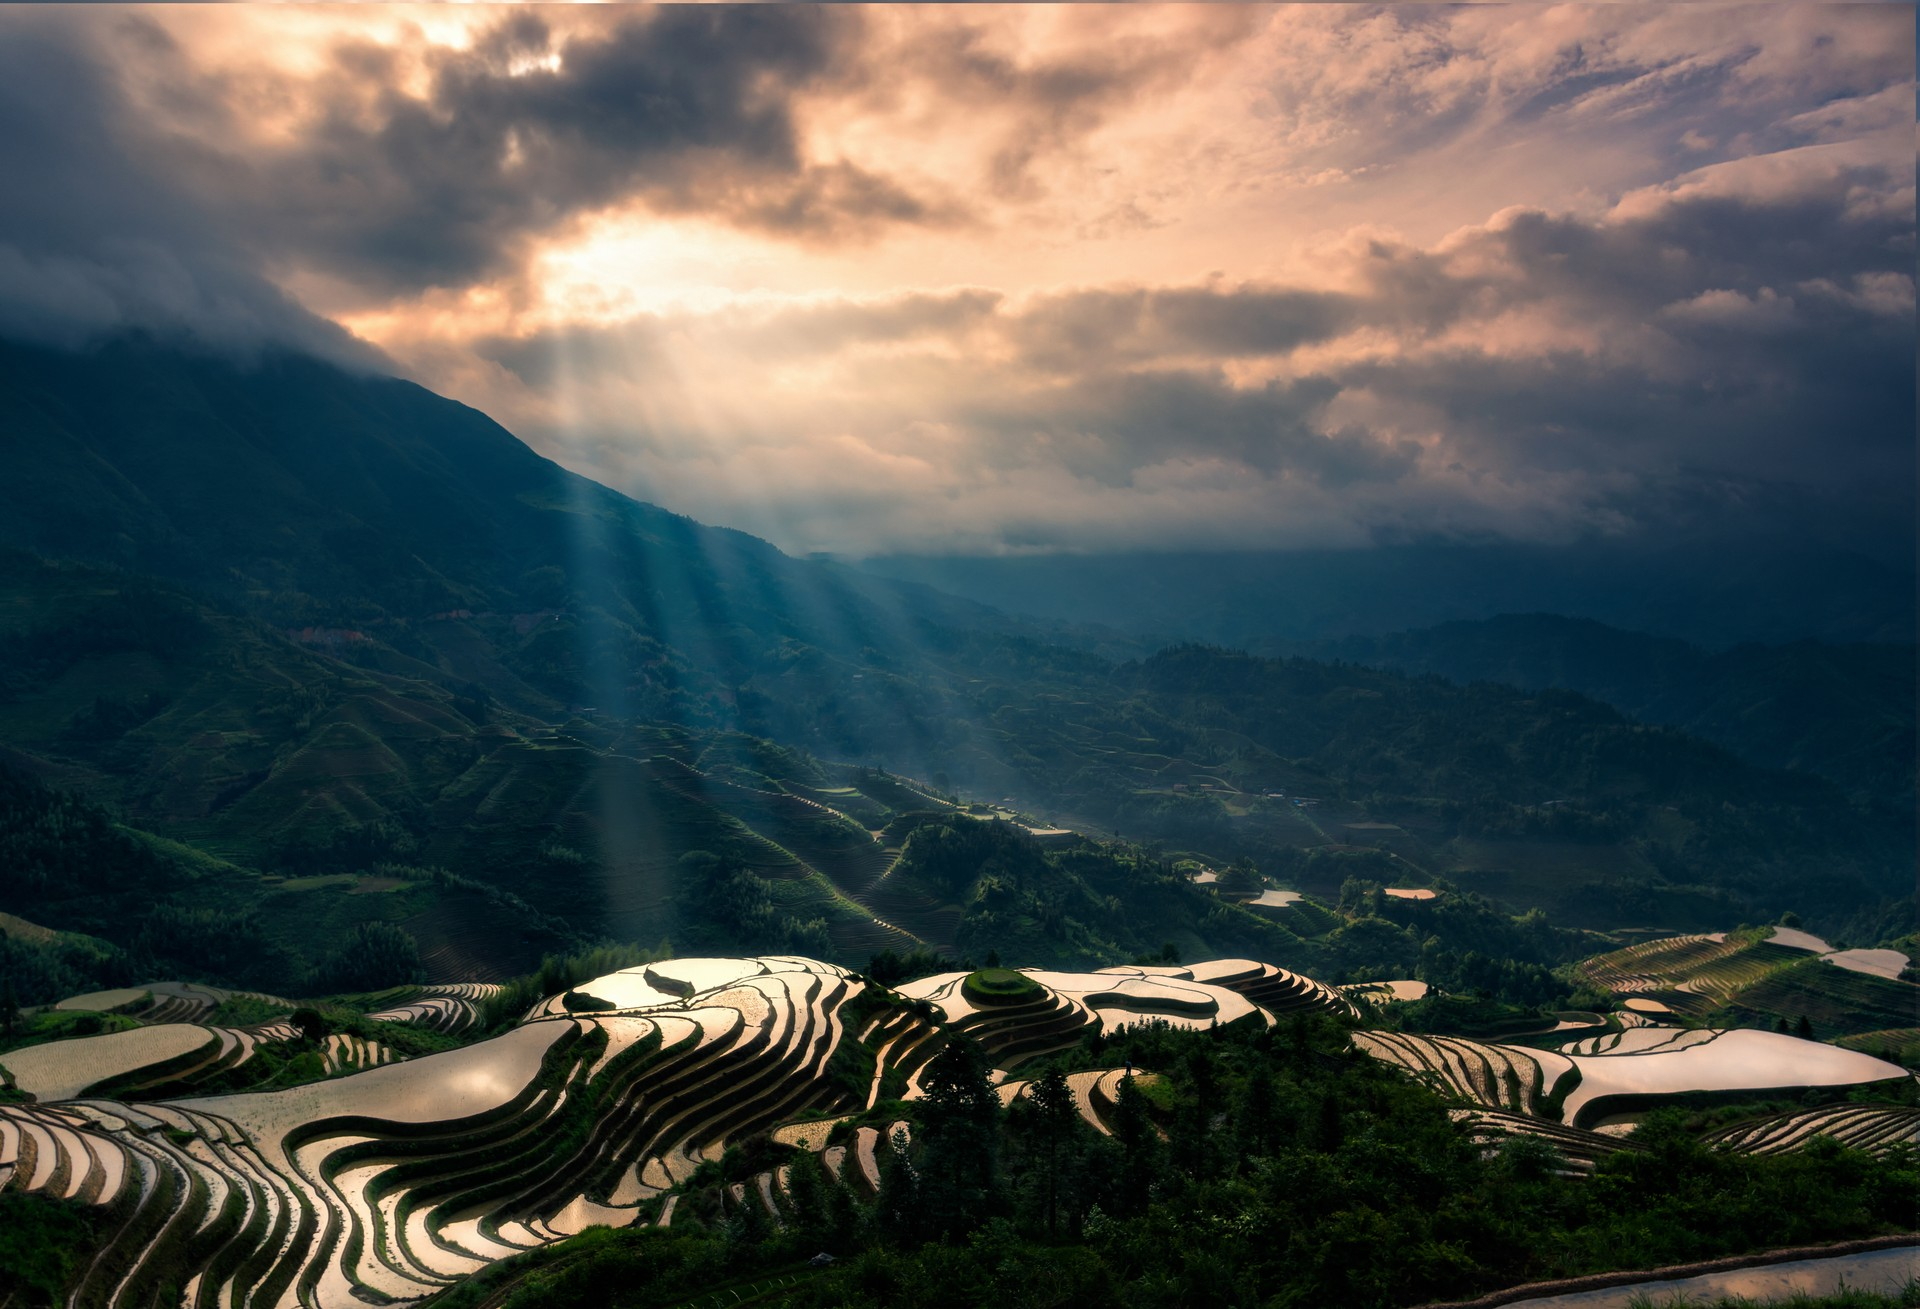 Sun reflecting on Longjing rice terraces